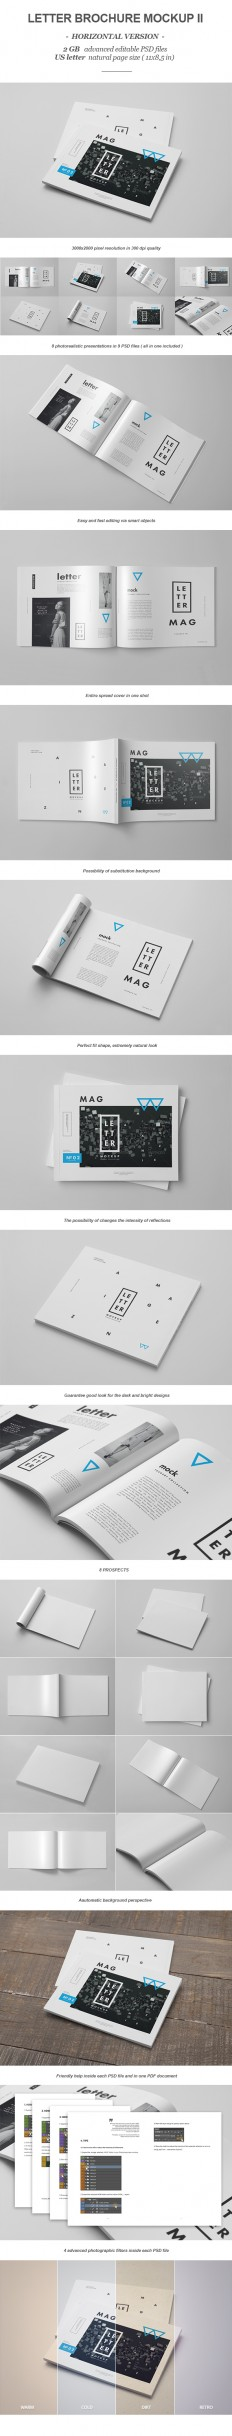 Horizontal Letter Magazine / Brochure Mock-up 2 on